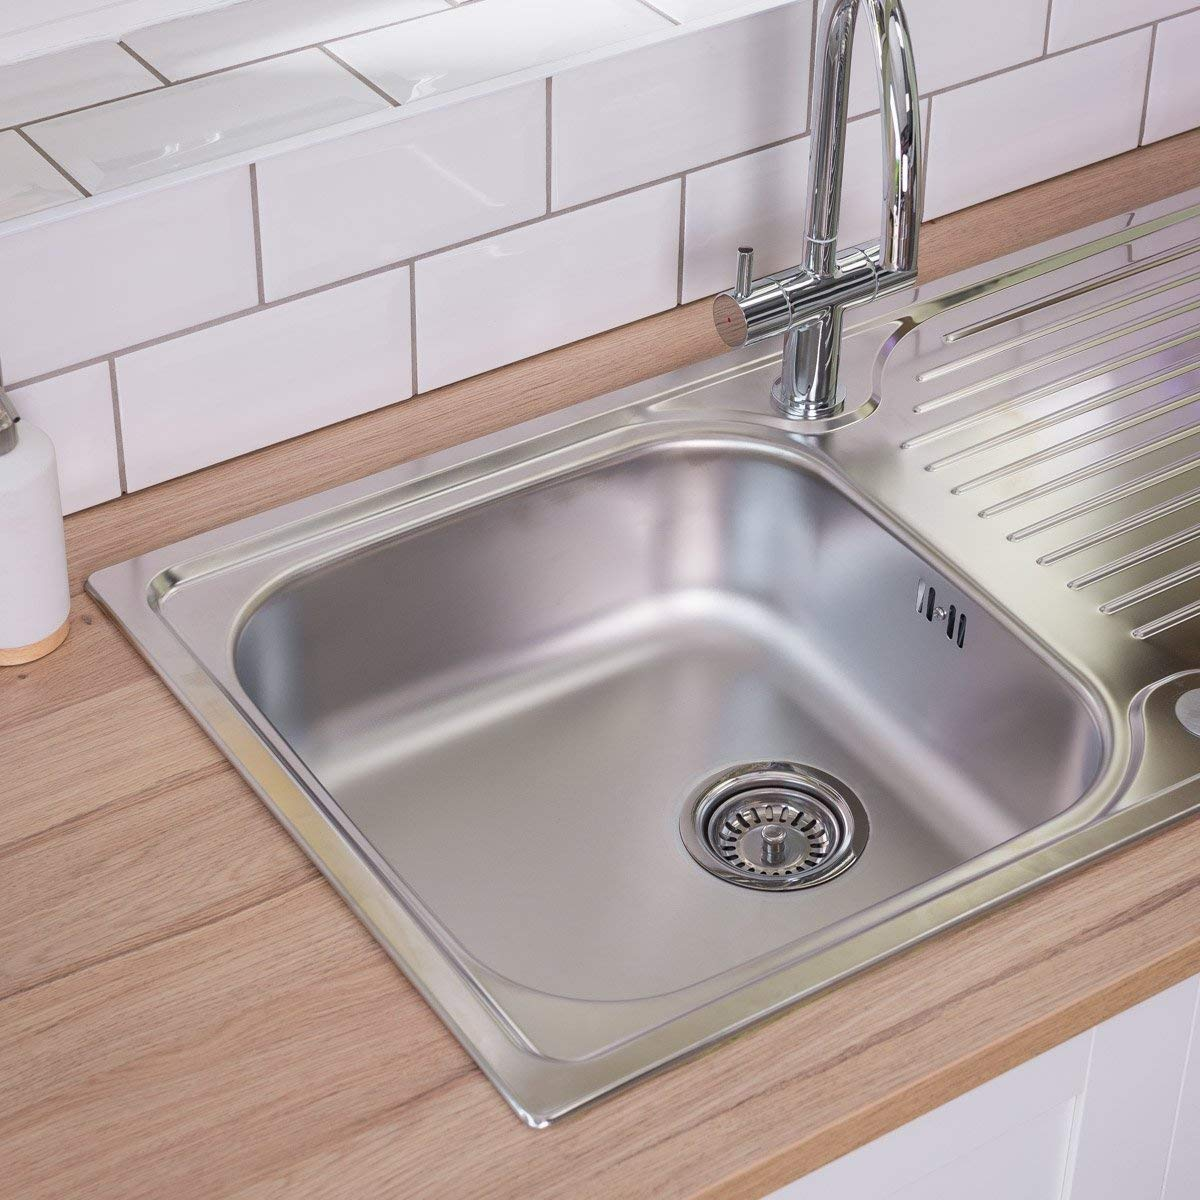 Astracast parallel 965 x 500mm stainless steel 1 0 bowl kitchen sink wastes amazon co uk diy tools